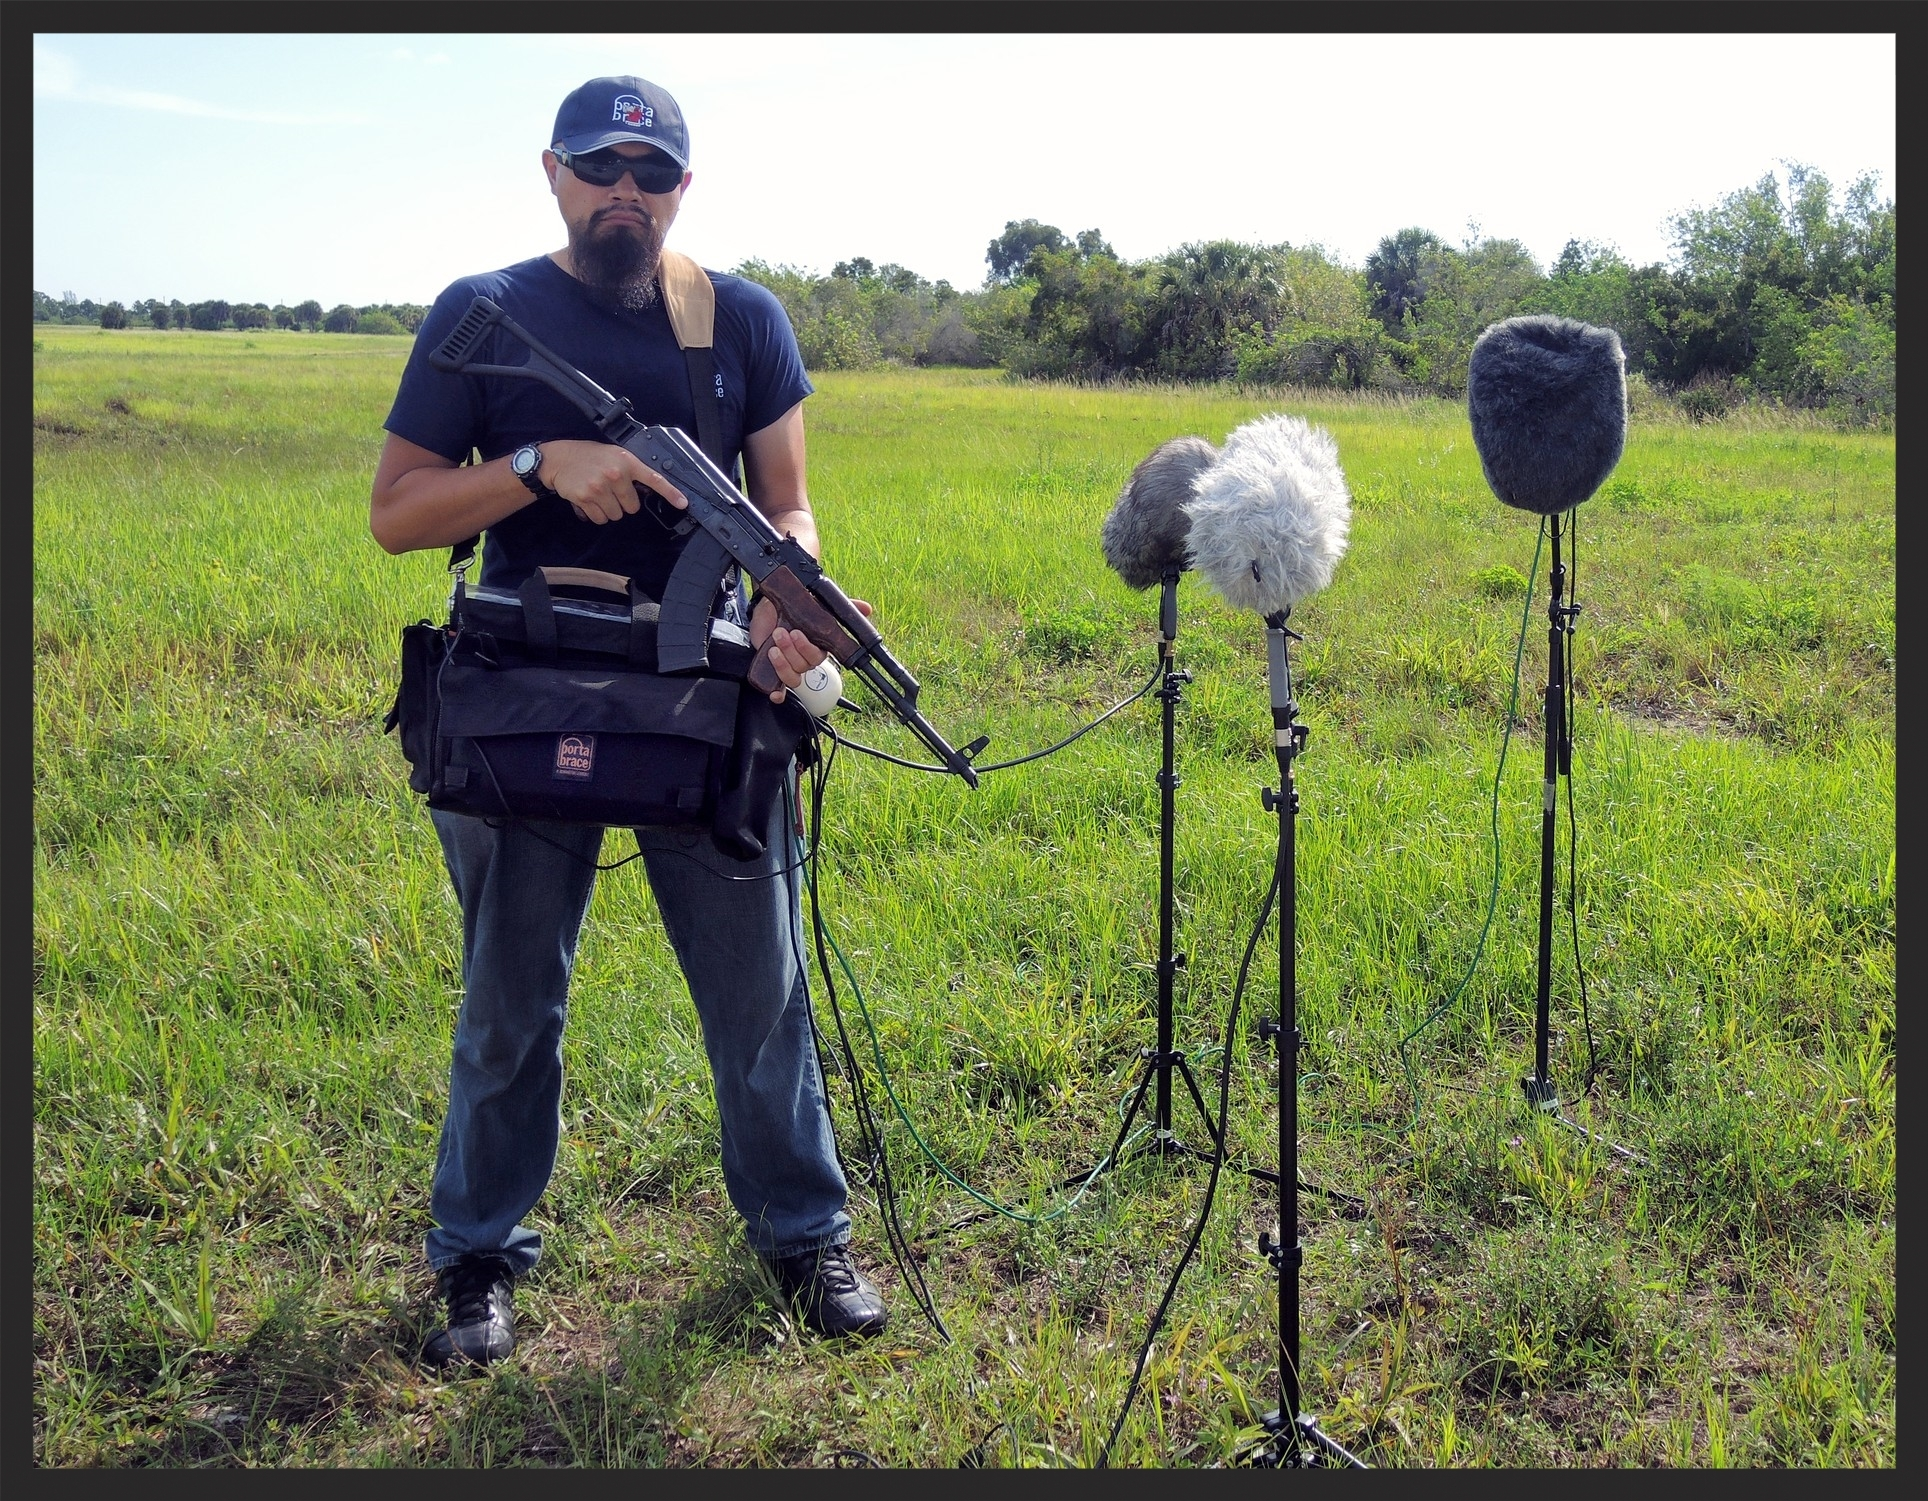 Multi-track field recording an AK-47. It's the same setup I used for the Ferrari session. This time the included strap worked well on my shoulder giving me room to shoot and record at the same time. I DON'T recommend doing this.  Safety is Always Number One!  Hire a professional armorer to do the safe shooting.